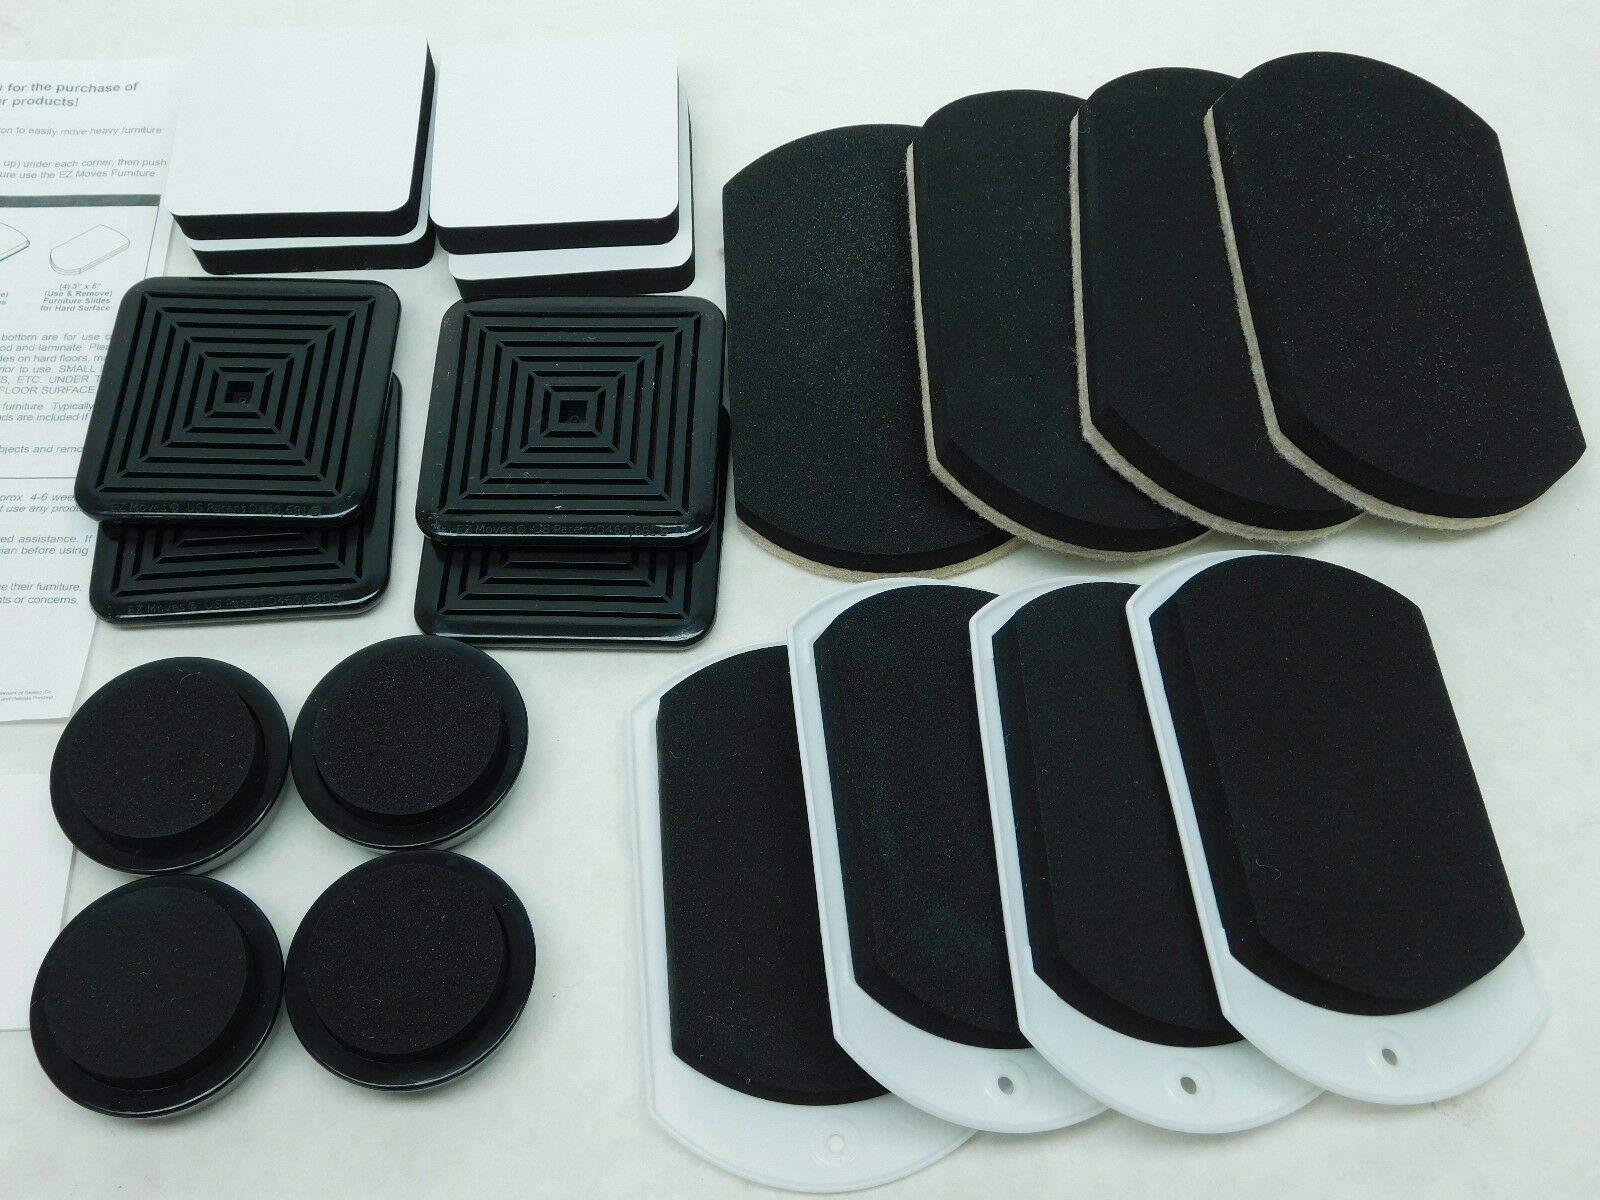 16 pcs Set Furniture Sliders Pads Movers Carpet Hard Wood Ceramic Floors Glide Heavy Easy Moves Foam and Felt Square Round Permanent Slides Adhesive Discs for EZ Movers